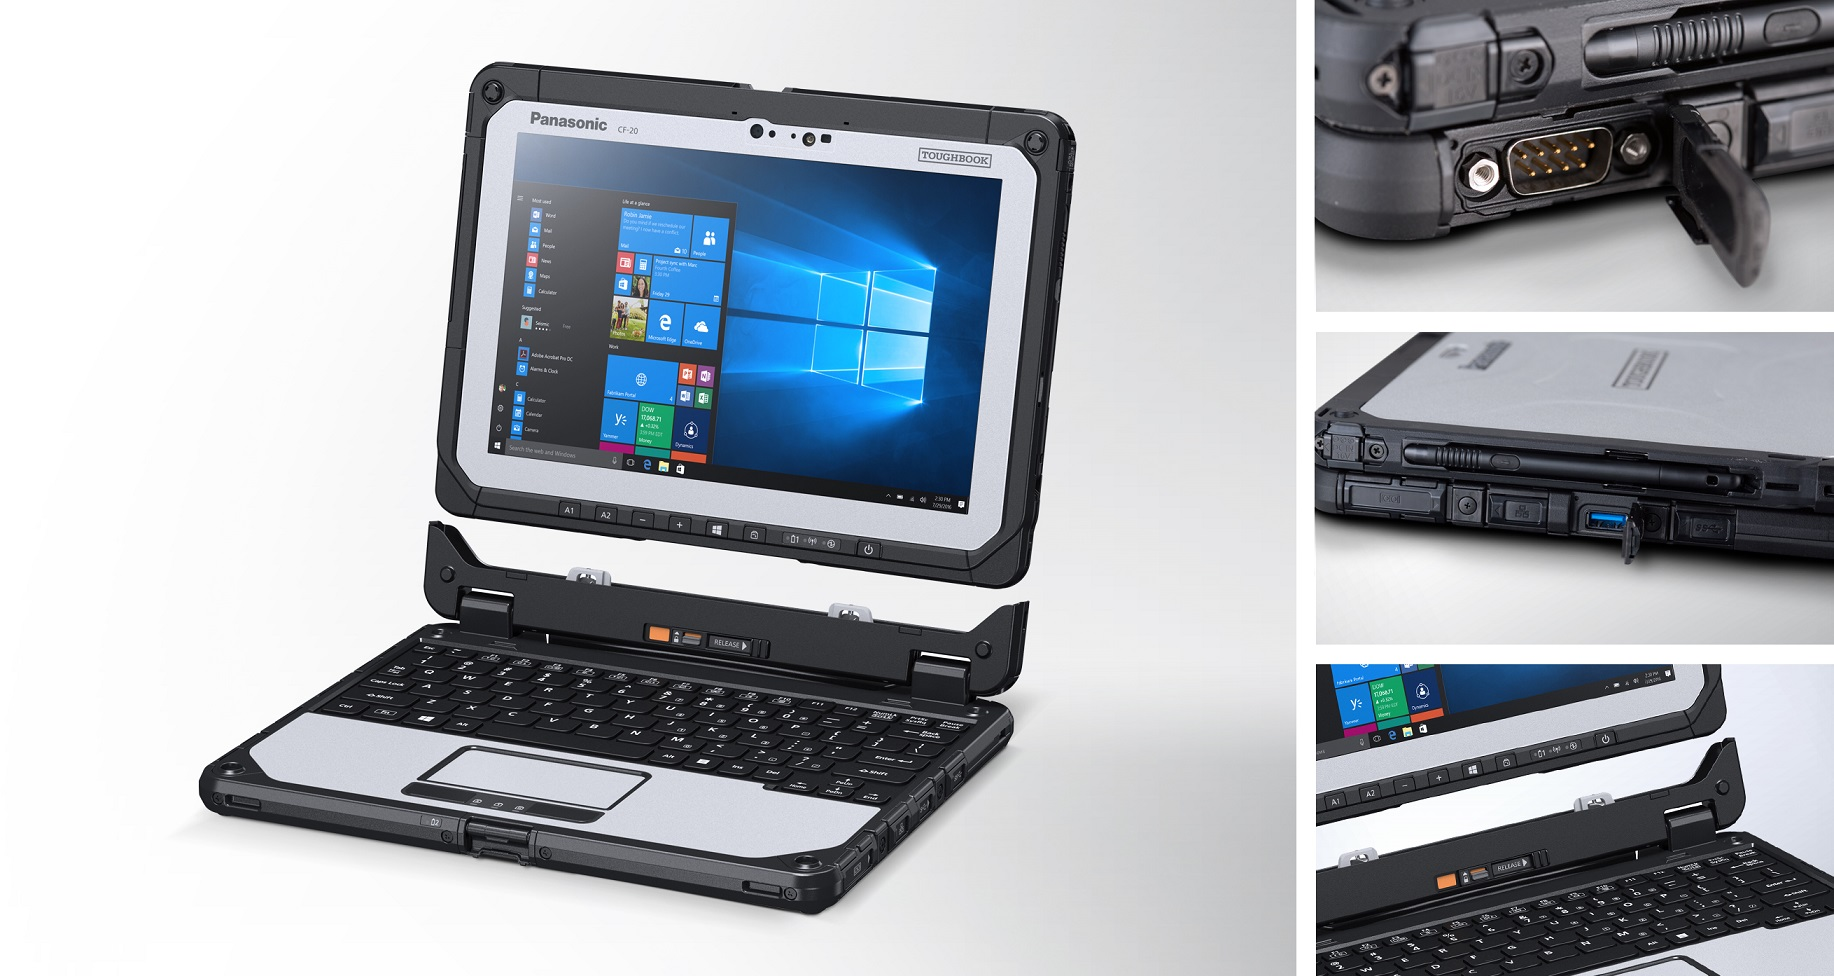 Panasonic updates Toughbook 20 with faster processor, standard features